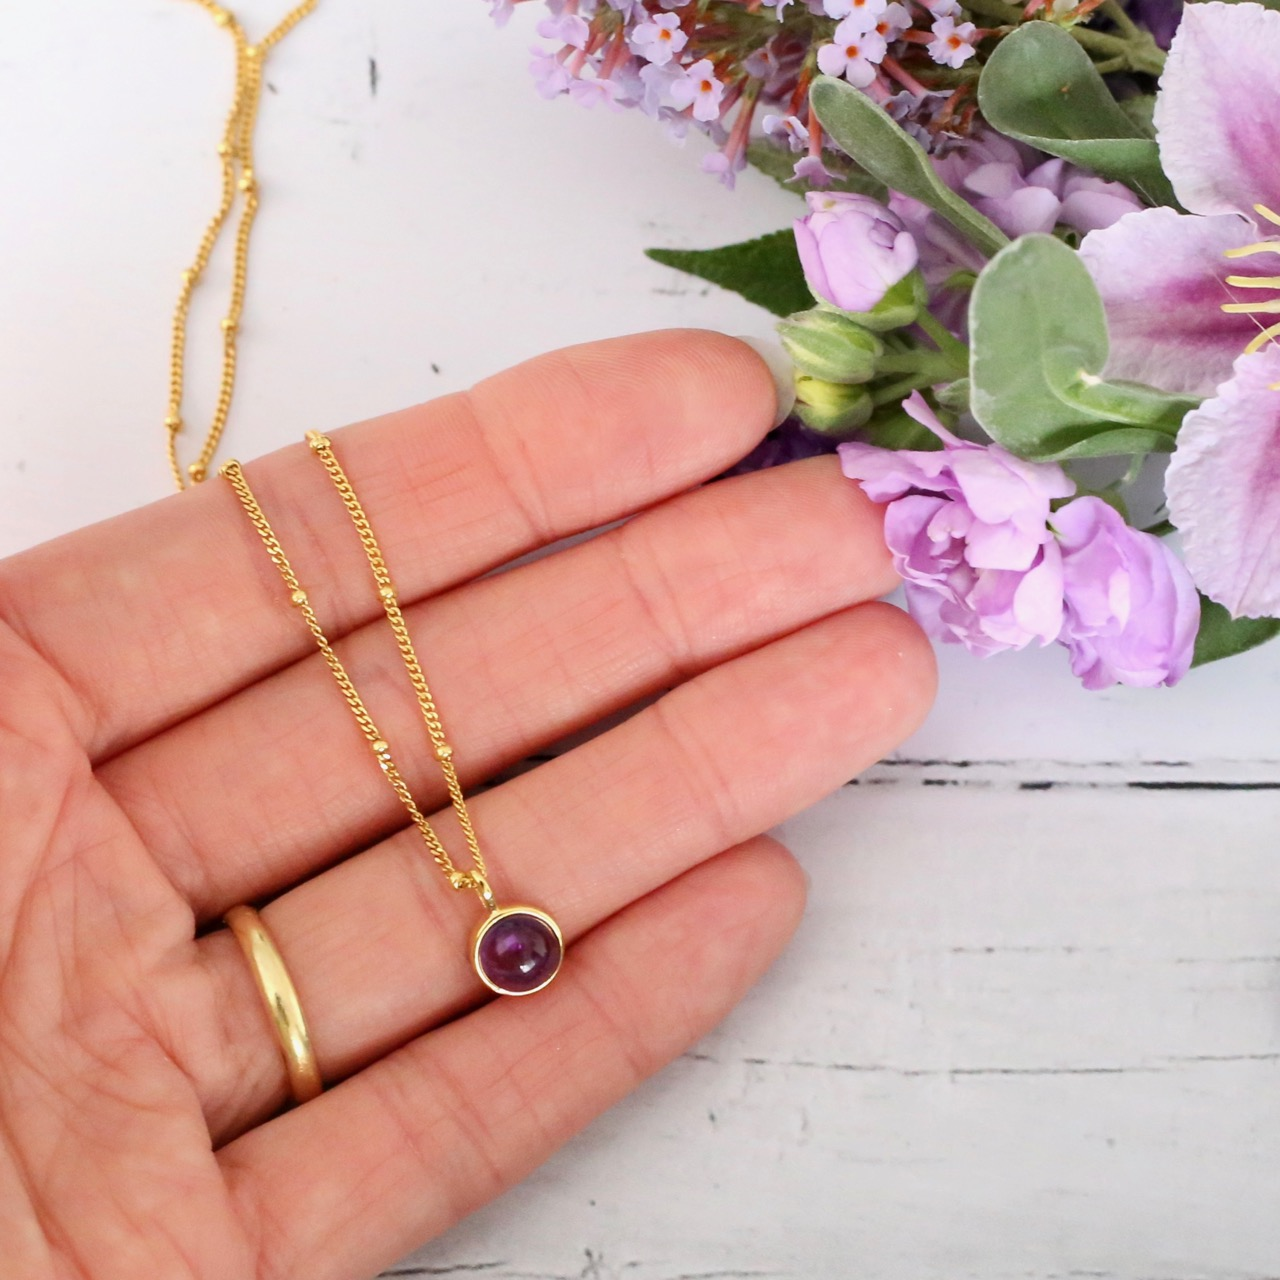 Daisy London amethyst pendant